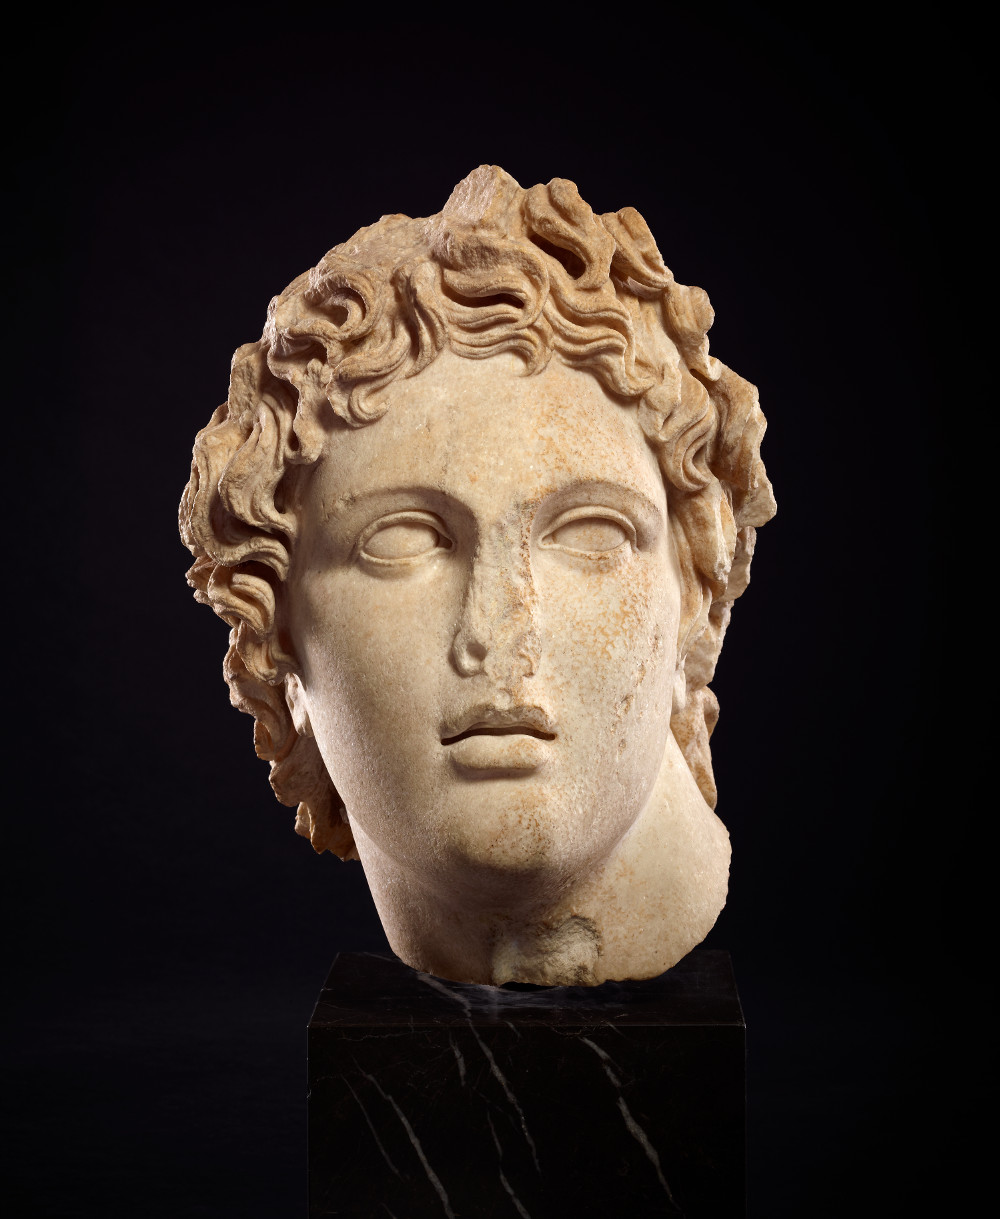 Head in the style of Alexander  - MarbleAD 100–200Roman (probably a copy of Greek work of about 330–300 BC)British Museum Alexander the Great (reigned 336–323 BC) ruled from Egypt to the Indus. He was adept at using his own image as a tool of political propaganda. He commissioned heroic portraits designed to project his character and virtues. This vision of the ruler-hero was copied by later rulers, including several Roman emperors. Their characteristics may be recognised in this idealised head with its lion's mane-like hair, clean-shaven face, full lips and tilted neck.